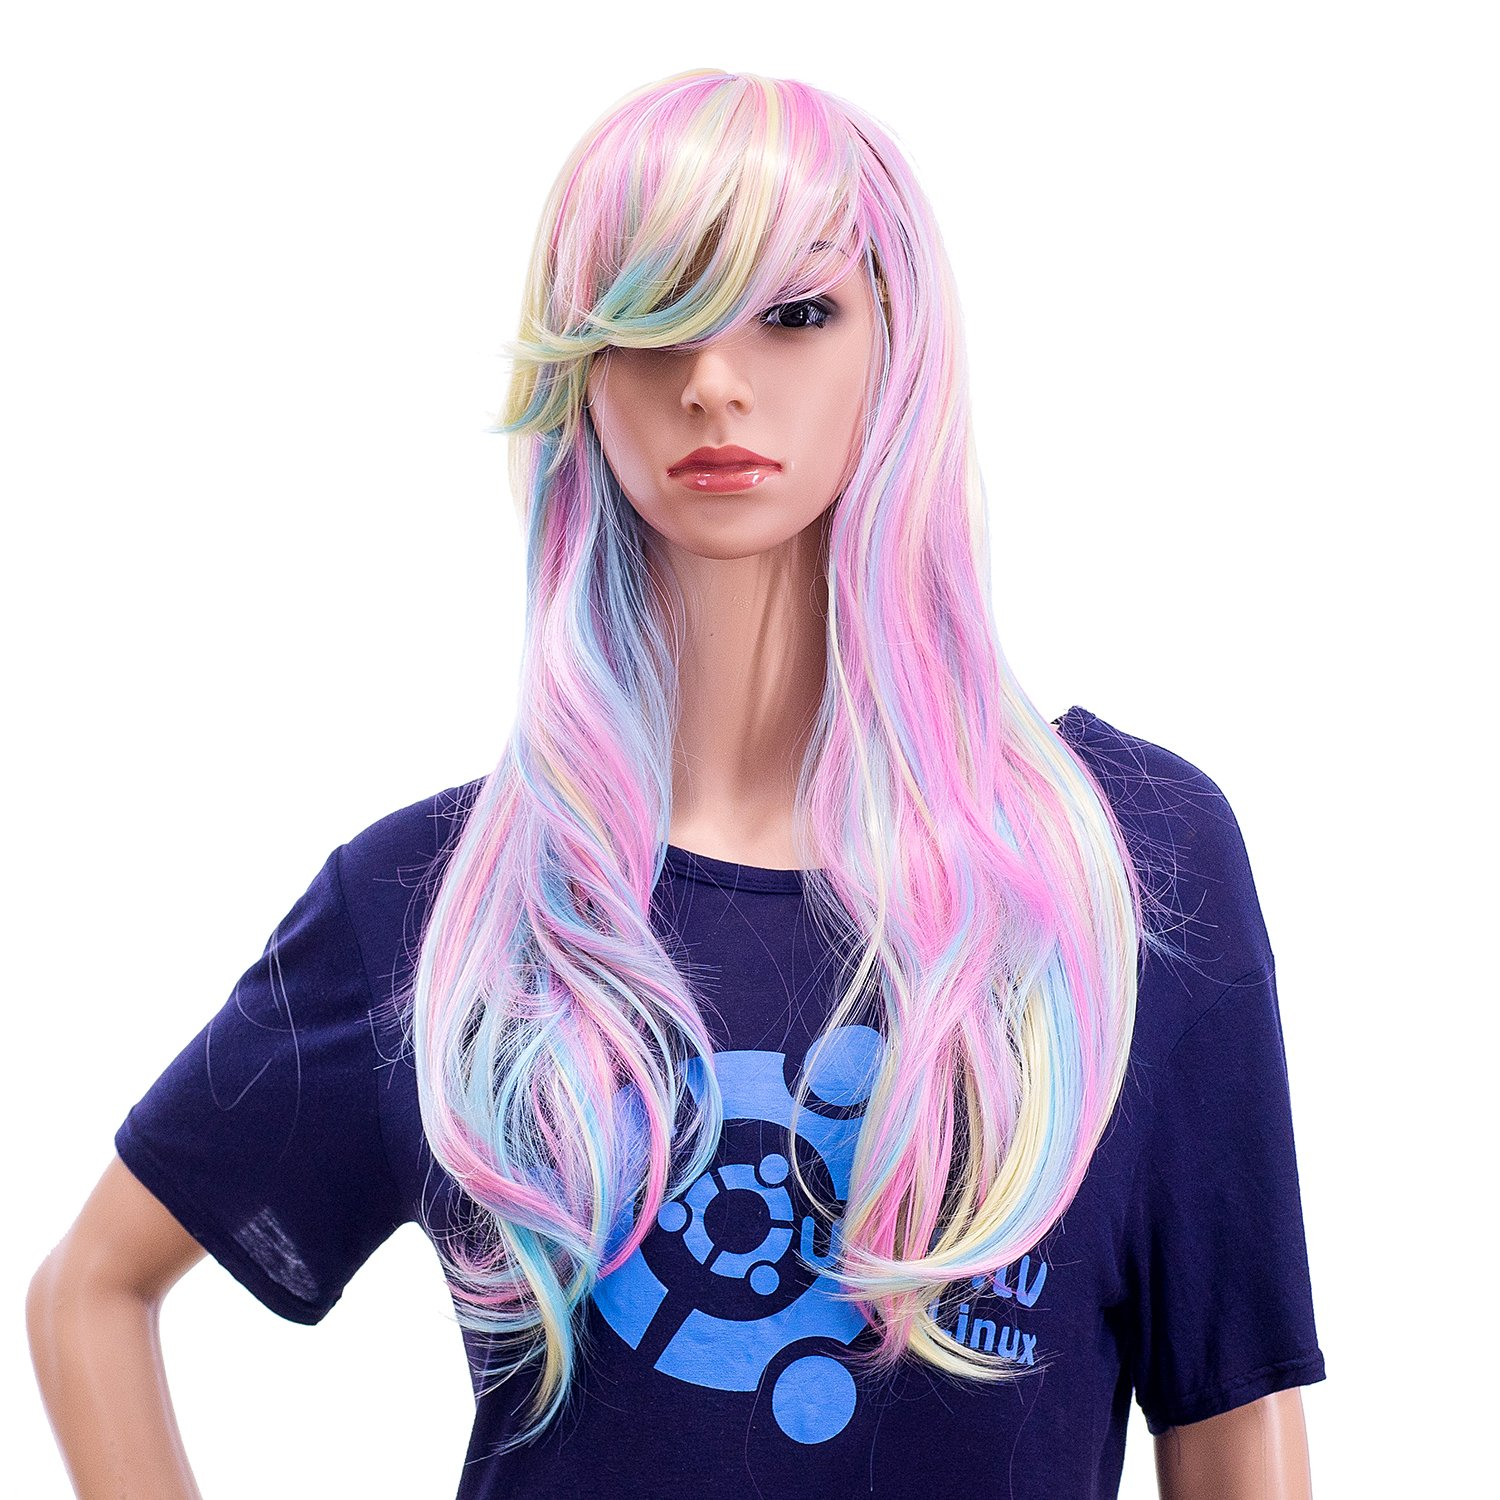 SWACC 26-Inch Long Curly Wave Cosplay Synthetic Wig Mixed Colorful Highlights by SWACC